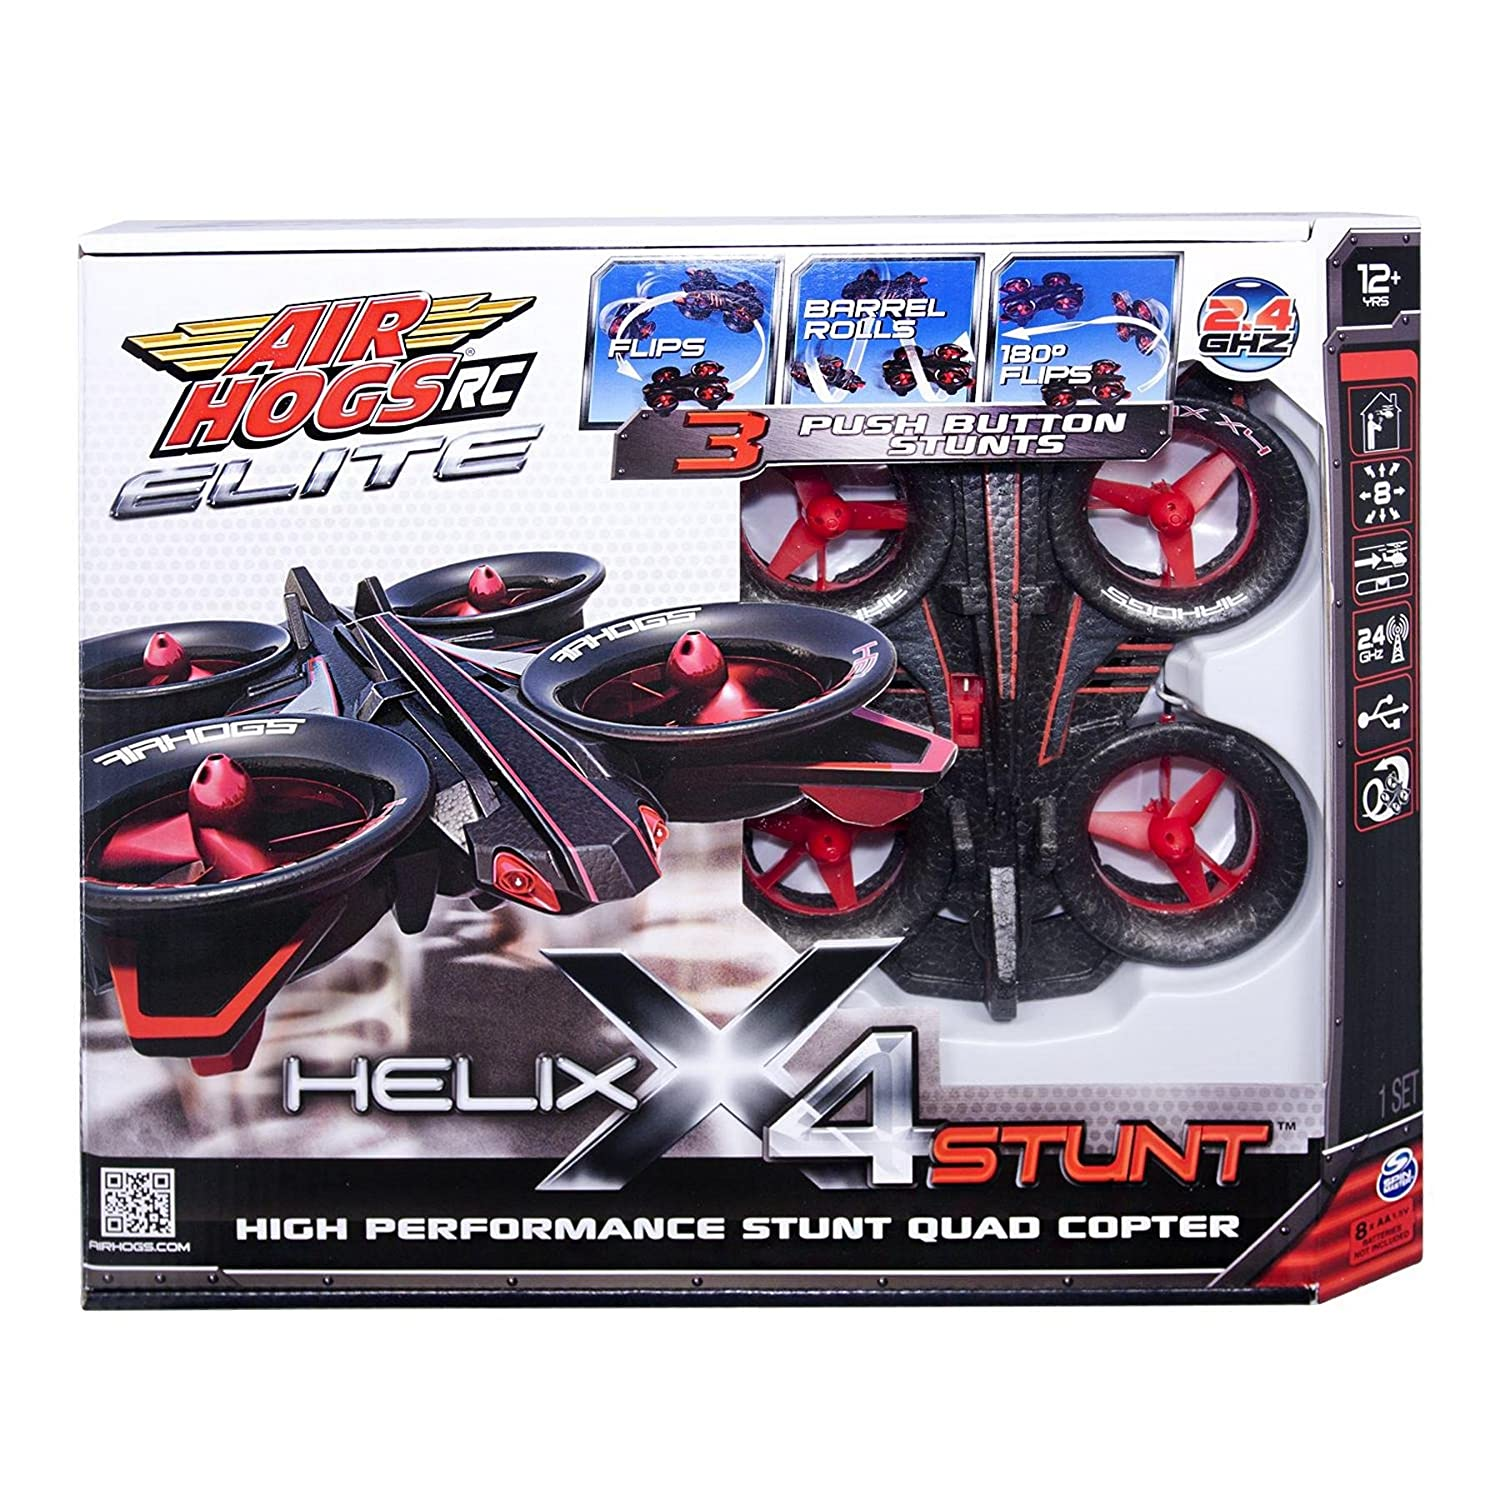 Air Hogs RC Helix X4 Stunt 24 GHZ Quad Copter Amazonca Toys Games